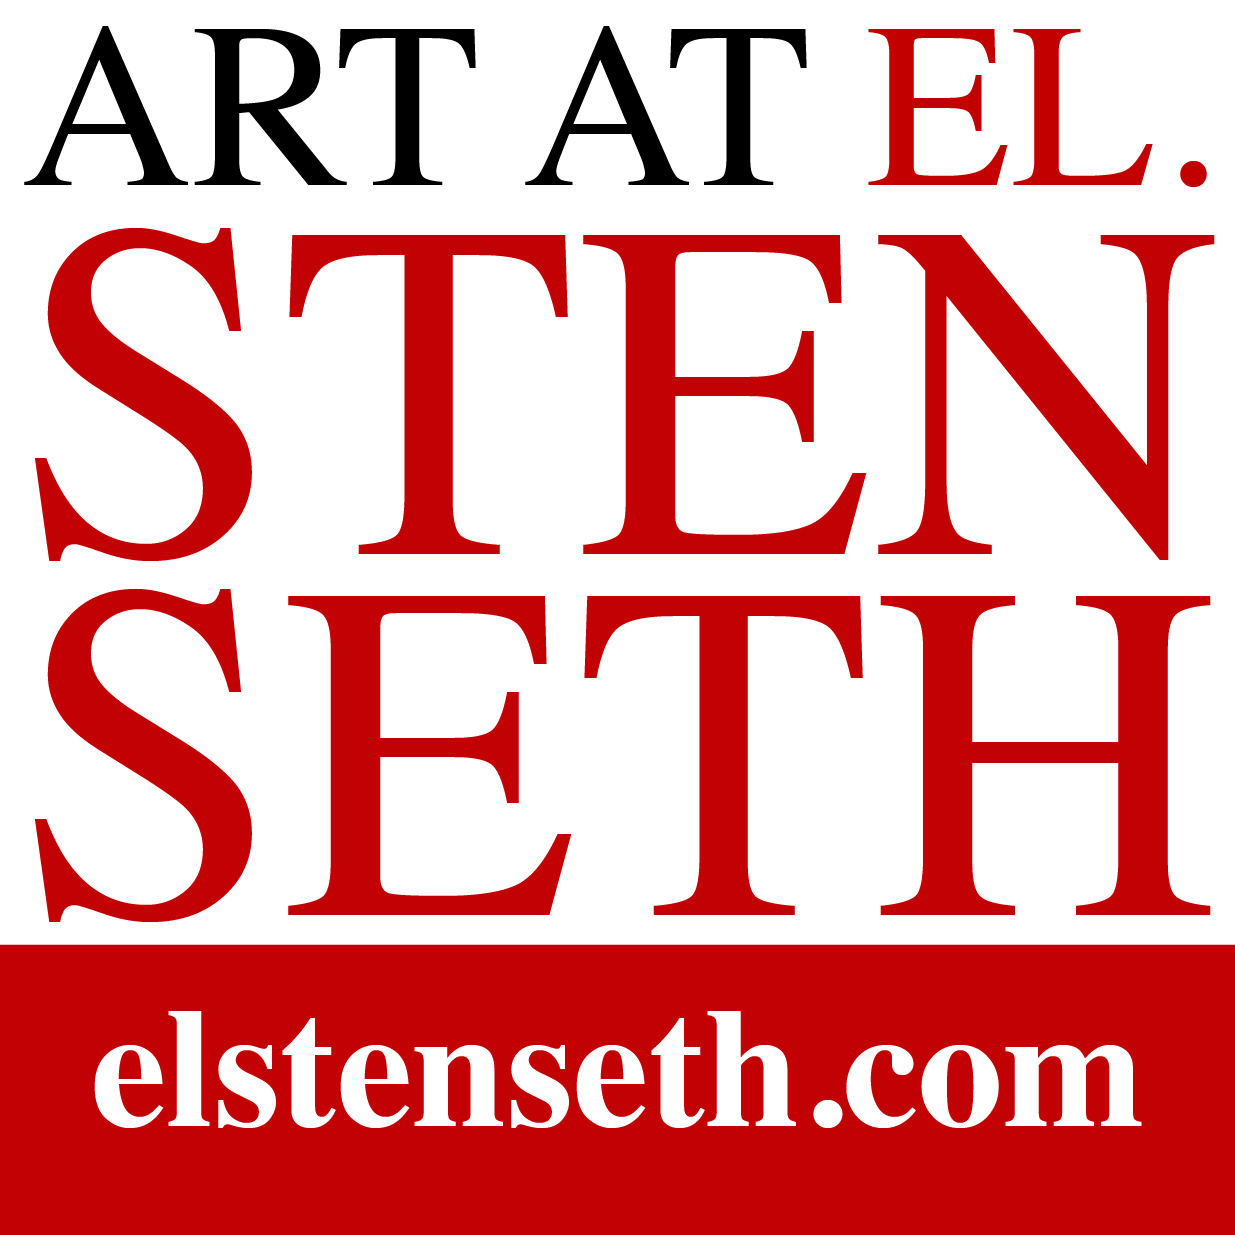 Galleri El.Stenseth